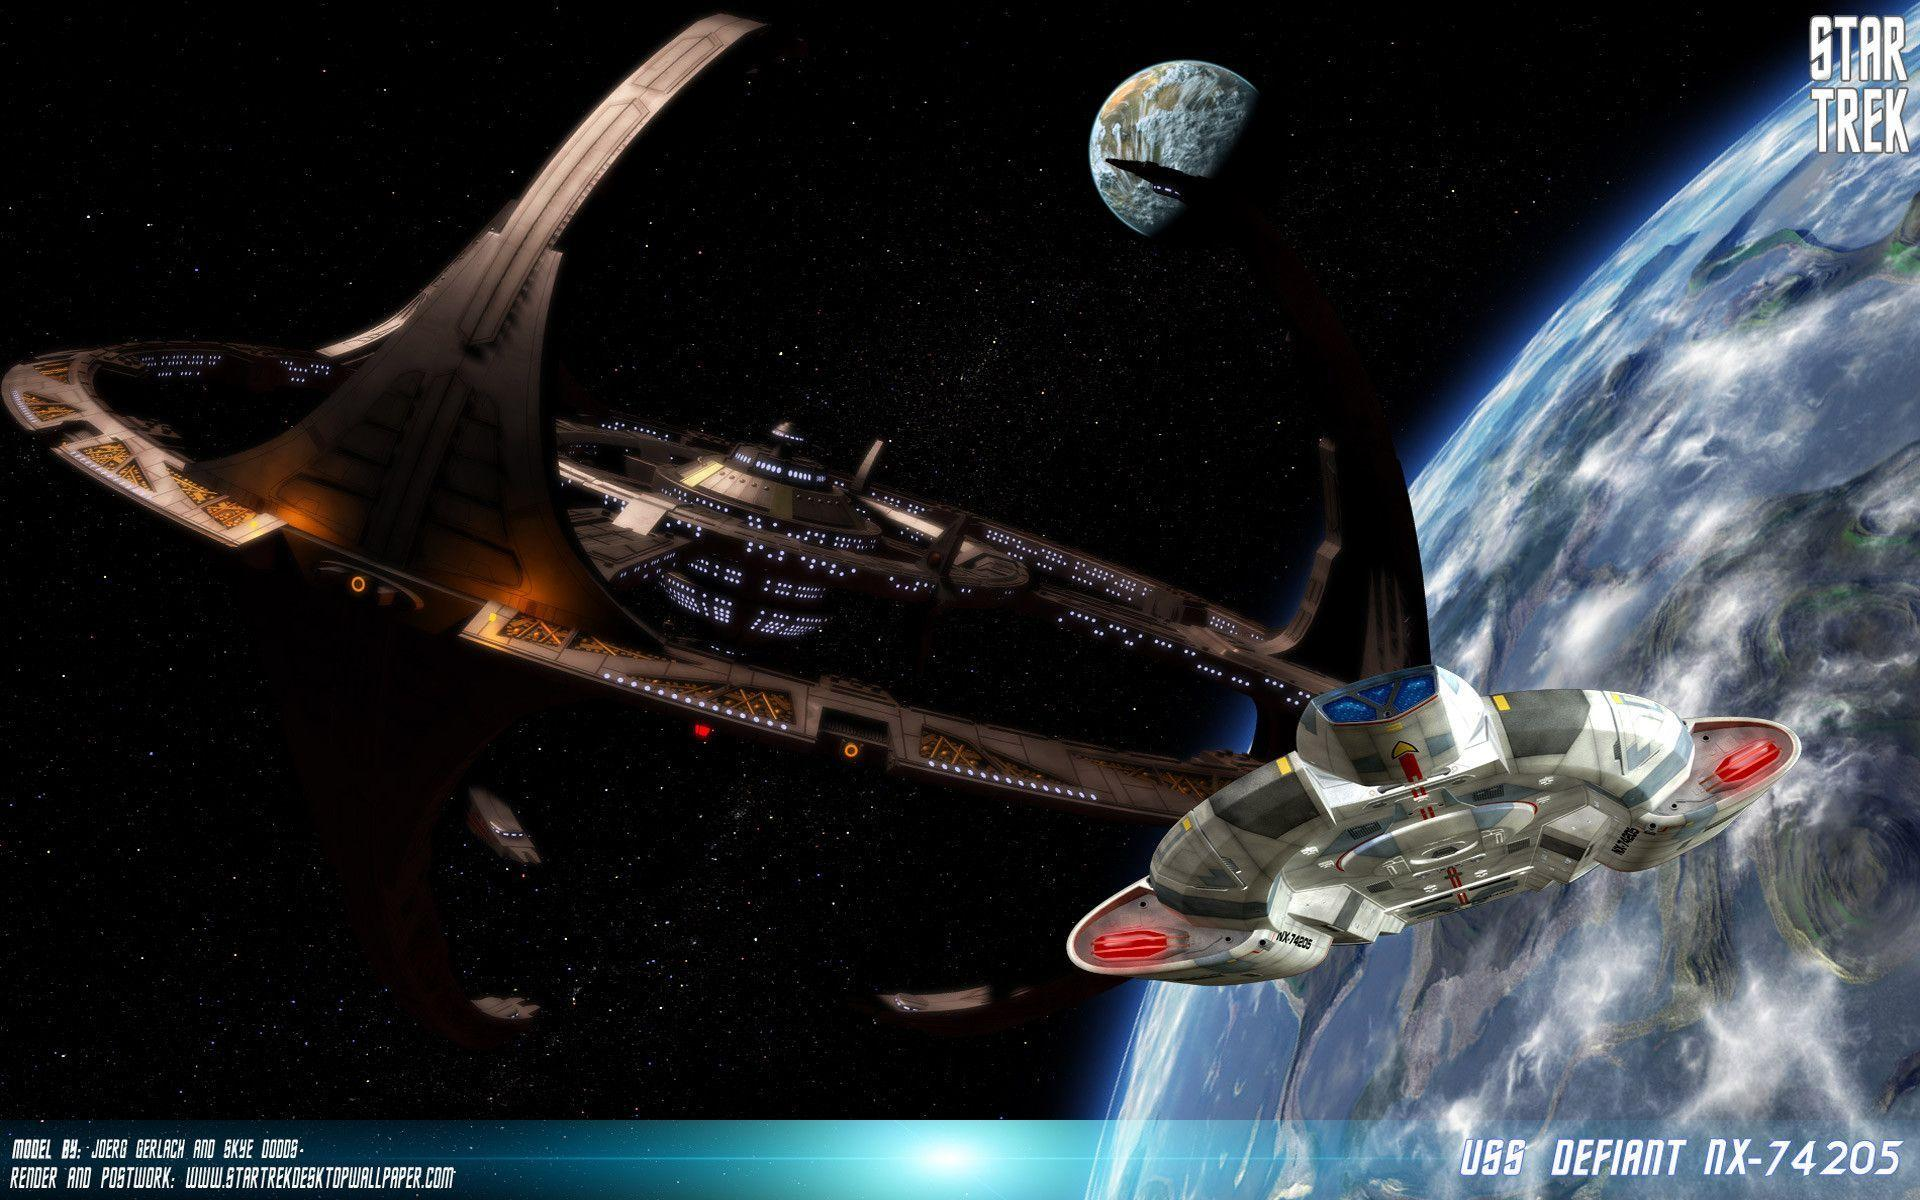 Star Trek Deep Space Nine USS Defiant, free Star Trek computer